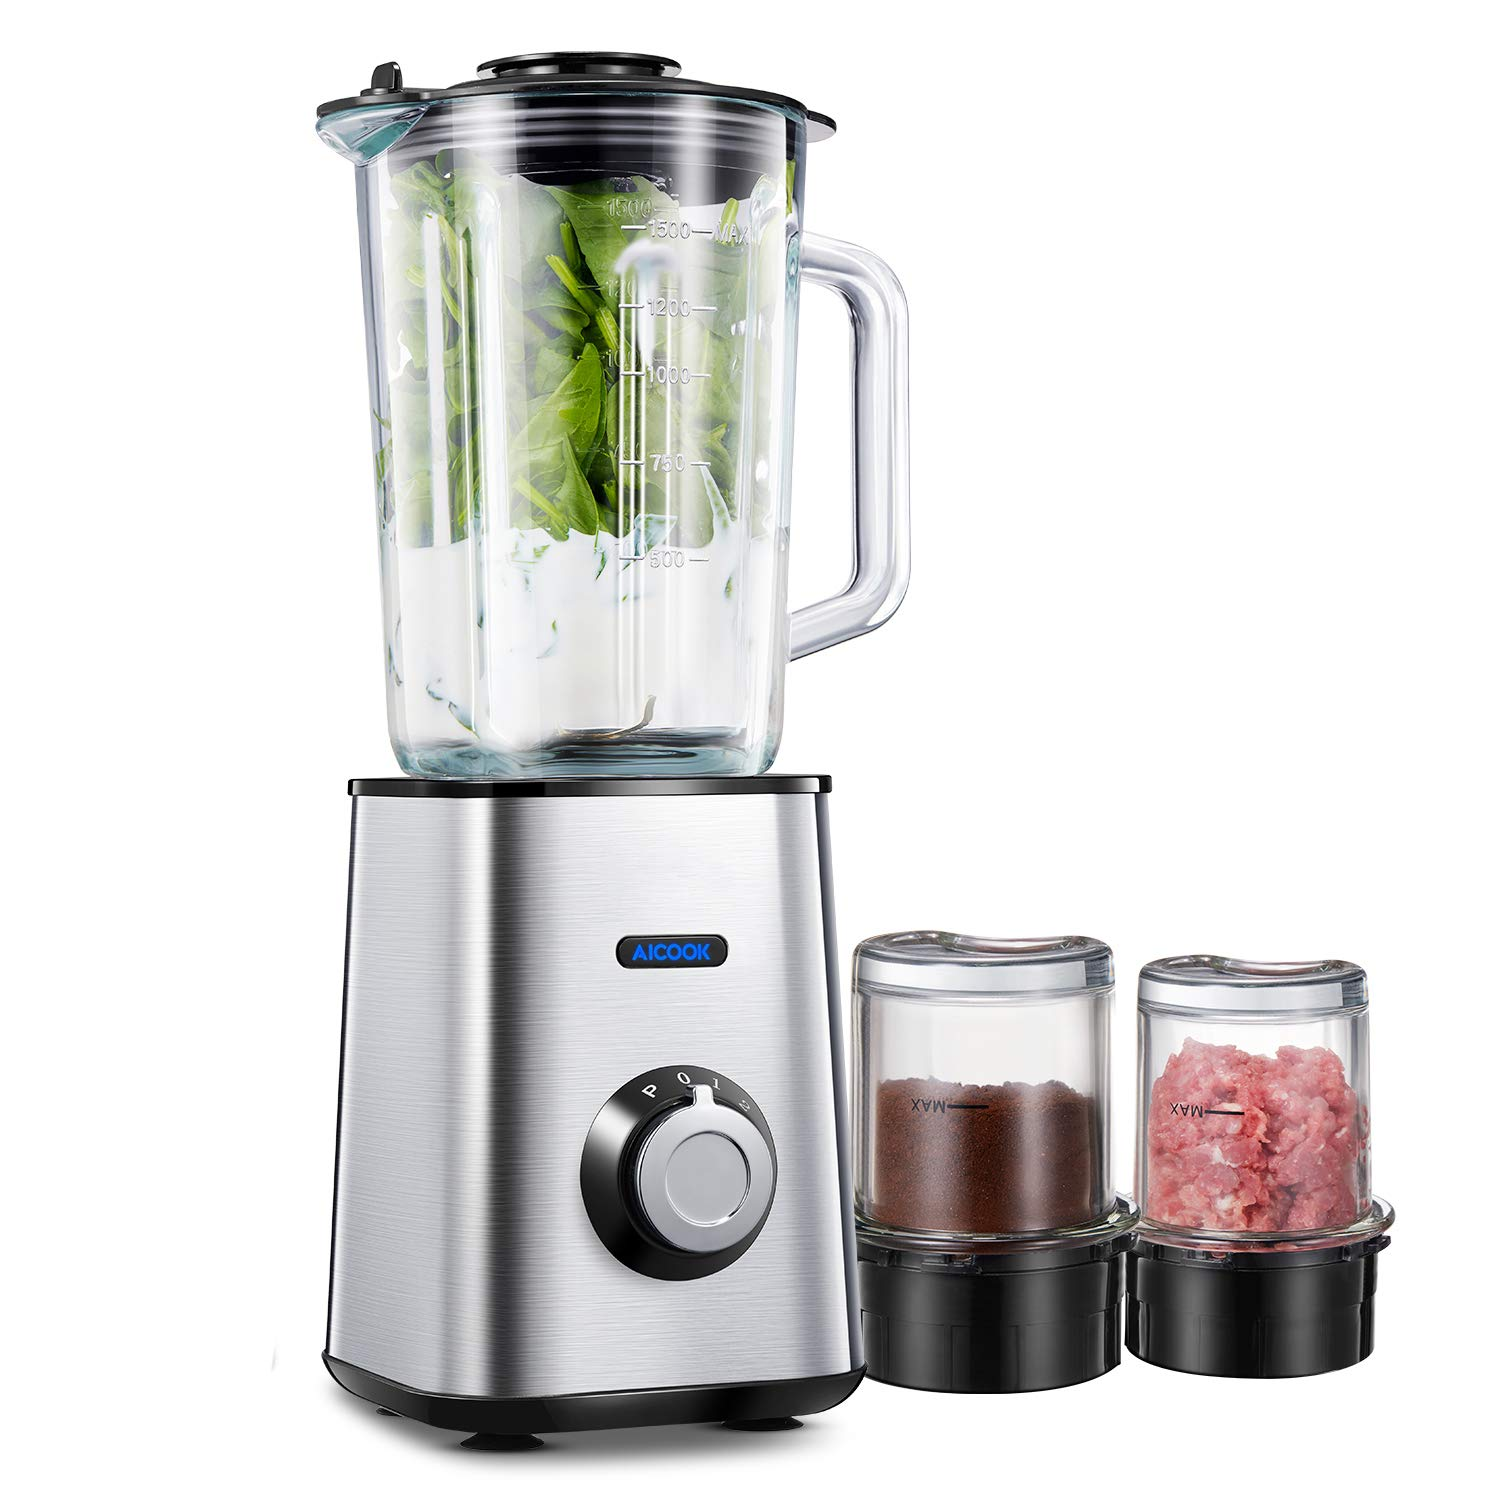 Blender, Aicook Smoothie Blender, Multifunctional Blender with 51.5oz Glass Jar, 8.5oz Grinding Cup, 8.5oz Meat Mincing Cup and 3 Titanium Coated Blades, Silver AMR938